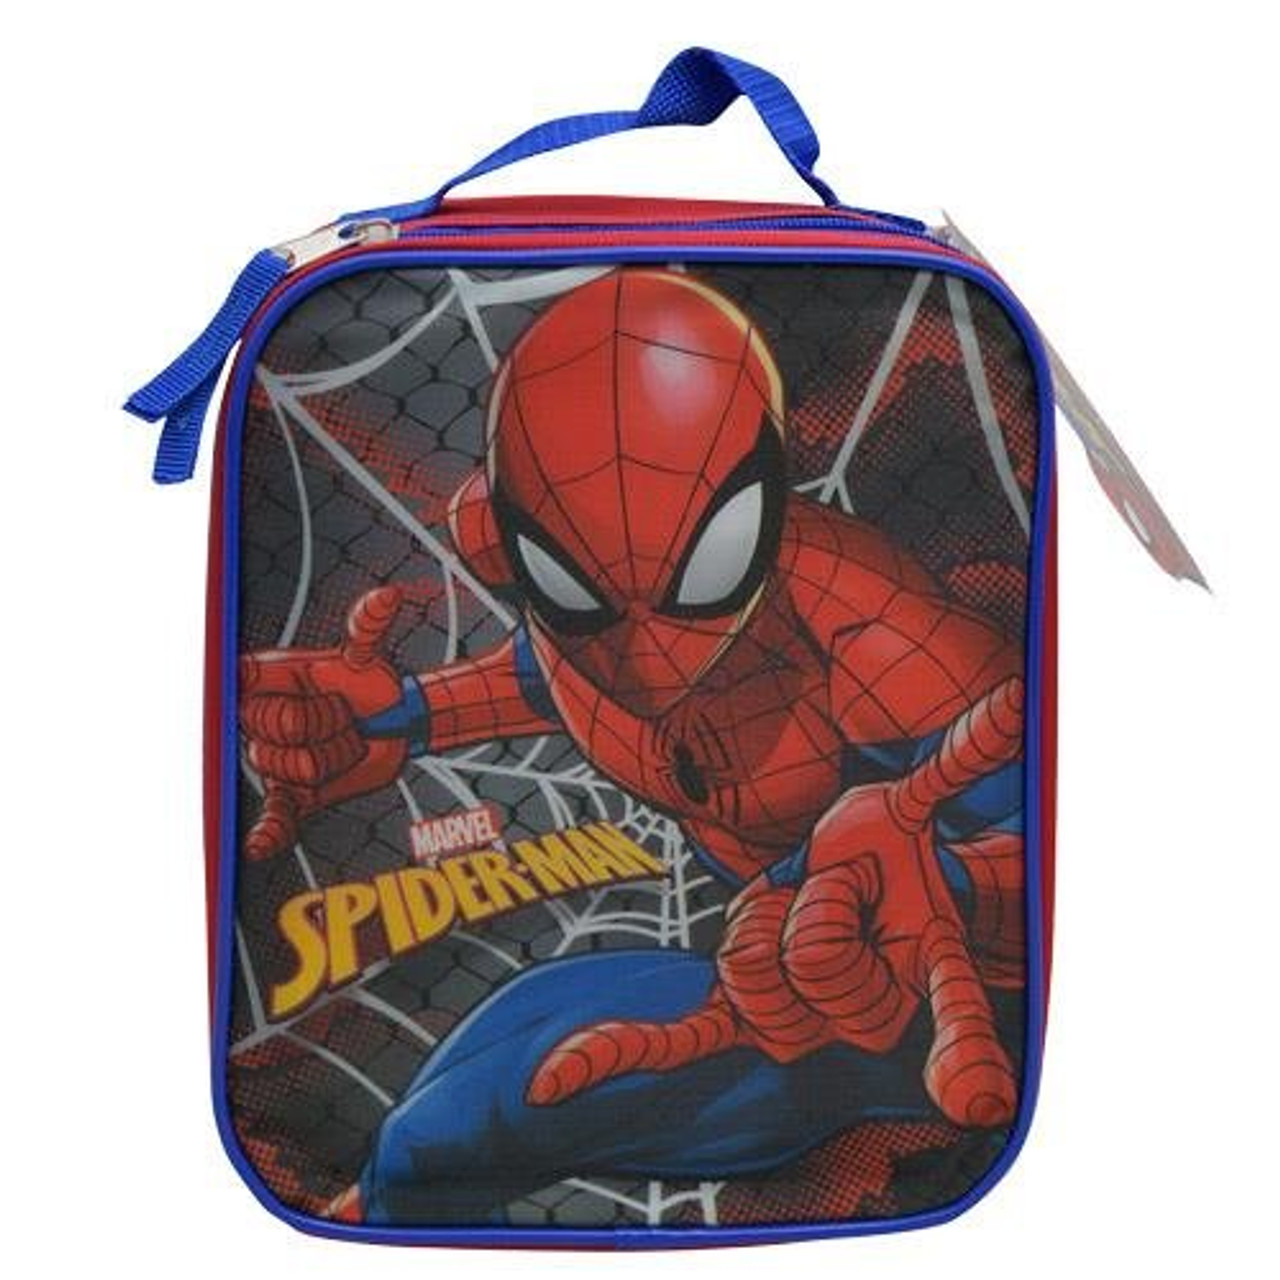 BOYS-OFFICIAL IRON SPIDERMAN LUNCHBAG WITH SHOULDER STRAP